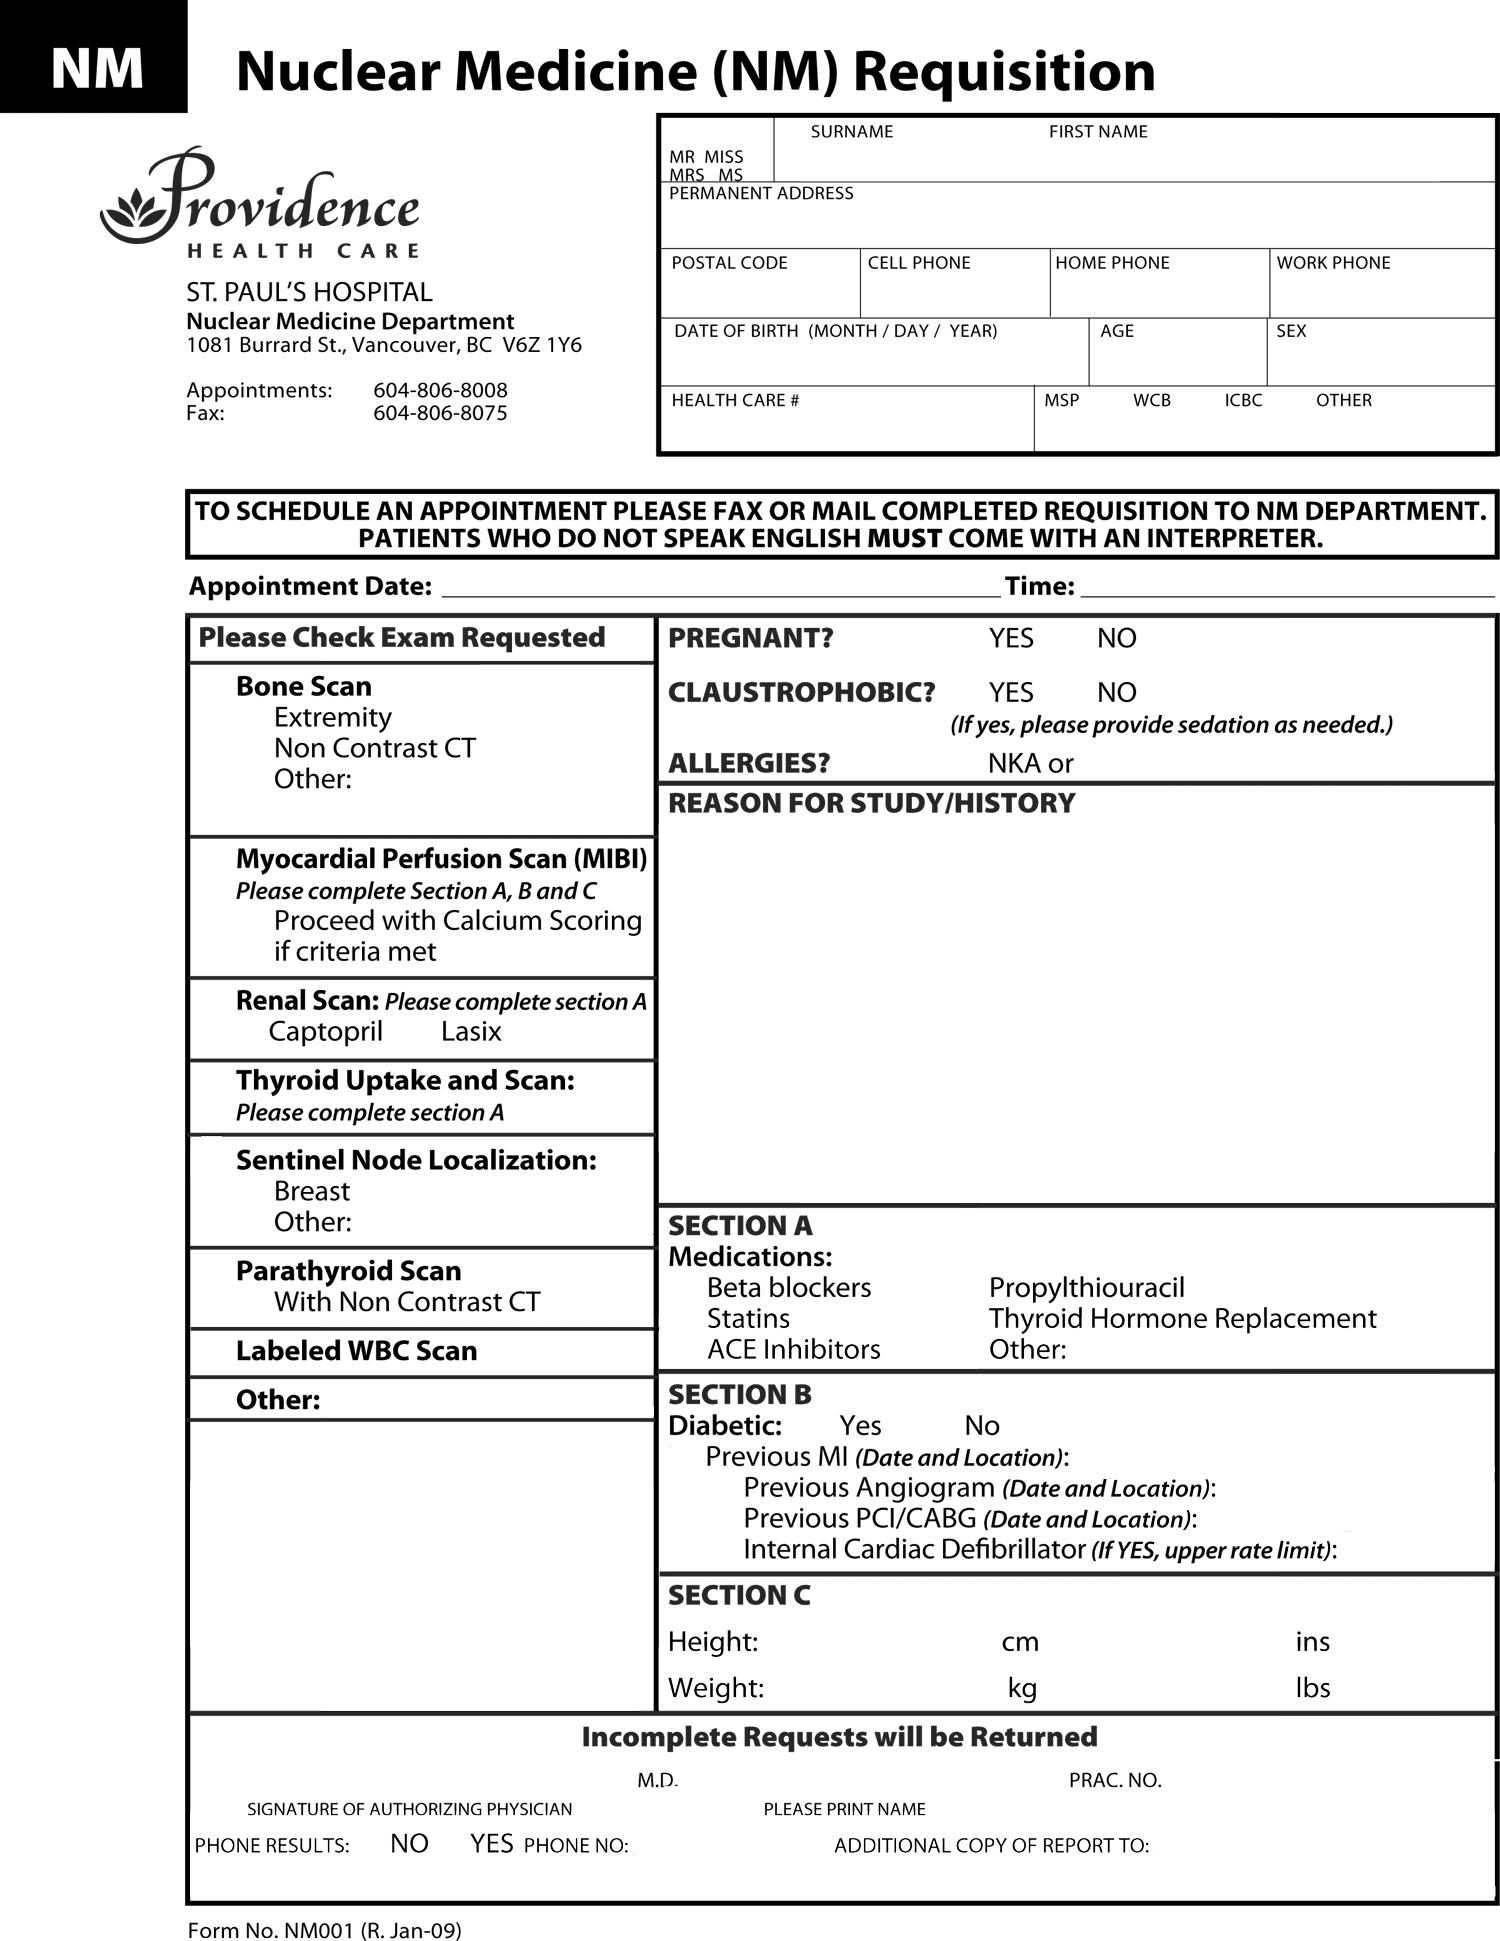 Providence Health Care Nuclear Medicine Nm Requisition